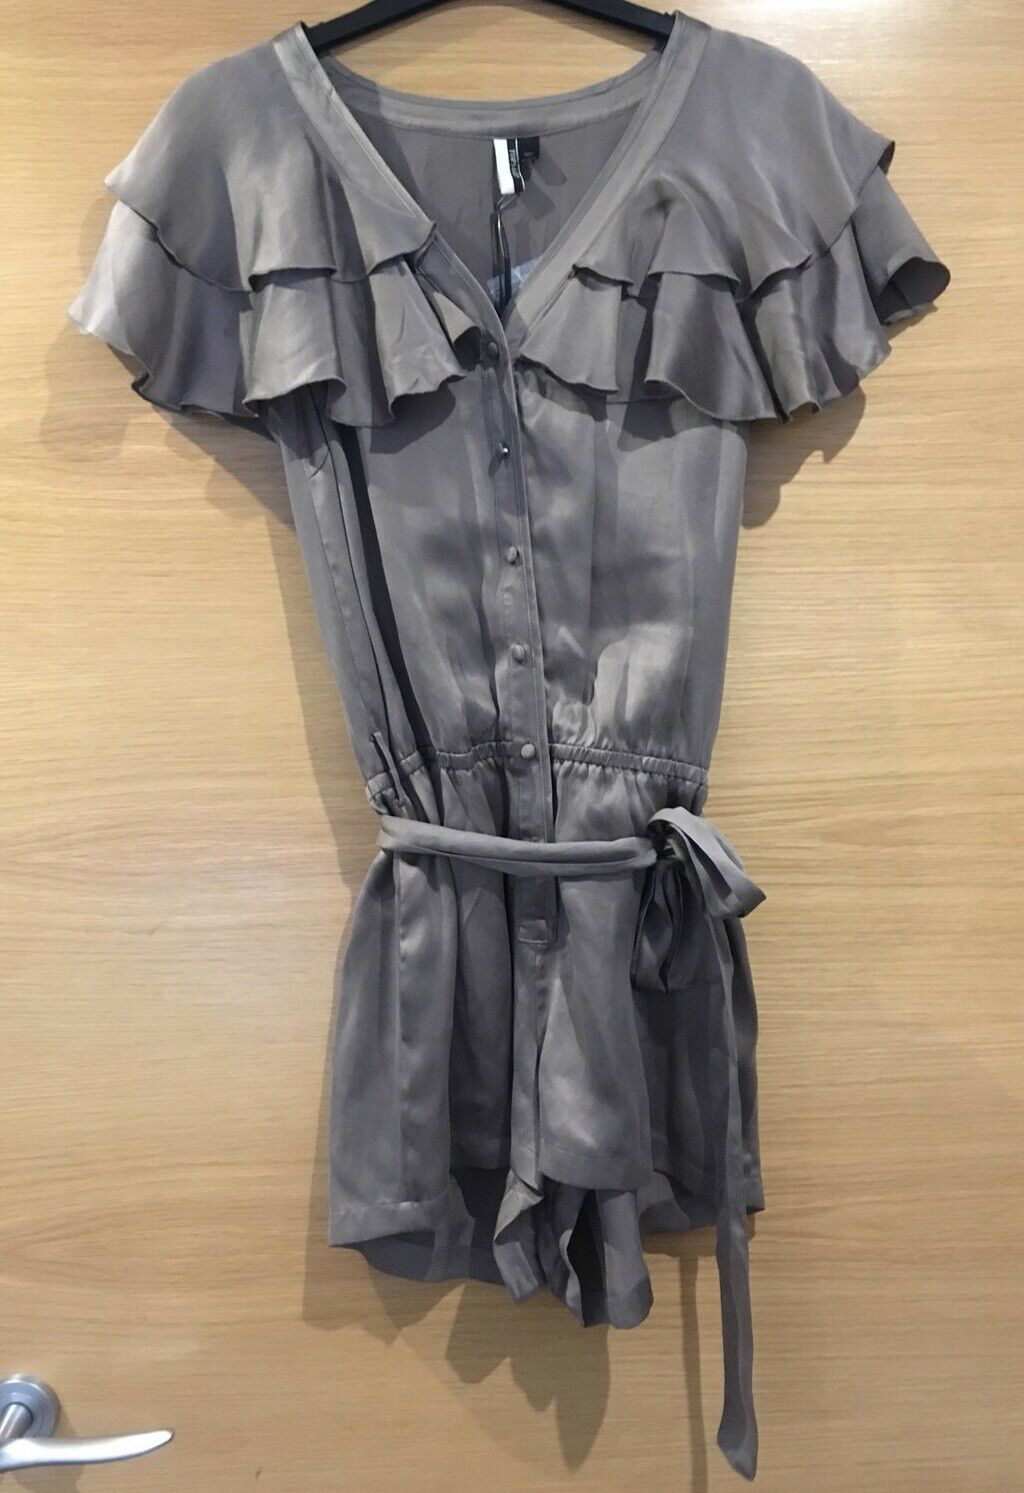 Taupe Mink Topshop Size 6 100% Silk Playsuit Ruffle Collar Shorts Party New